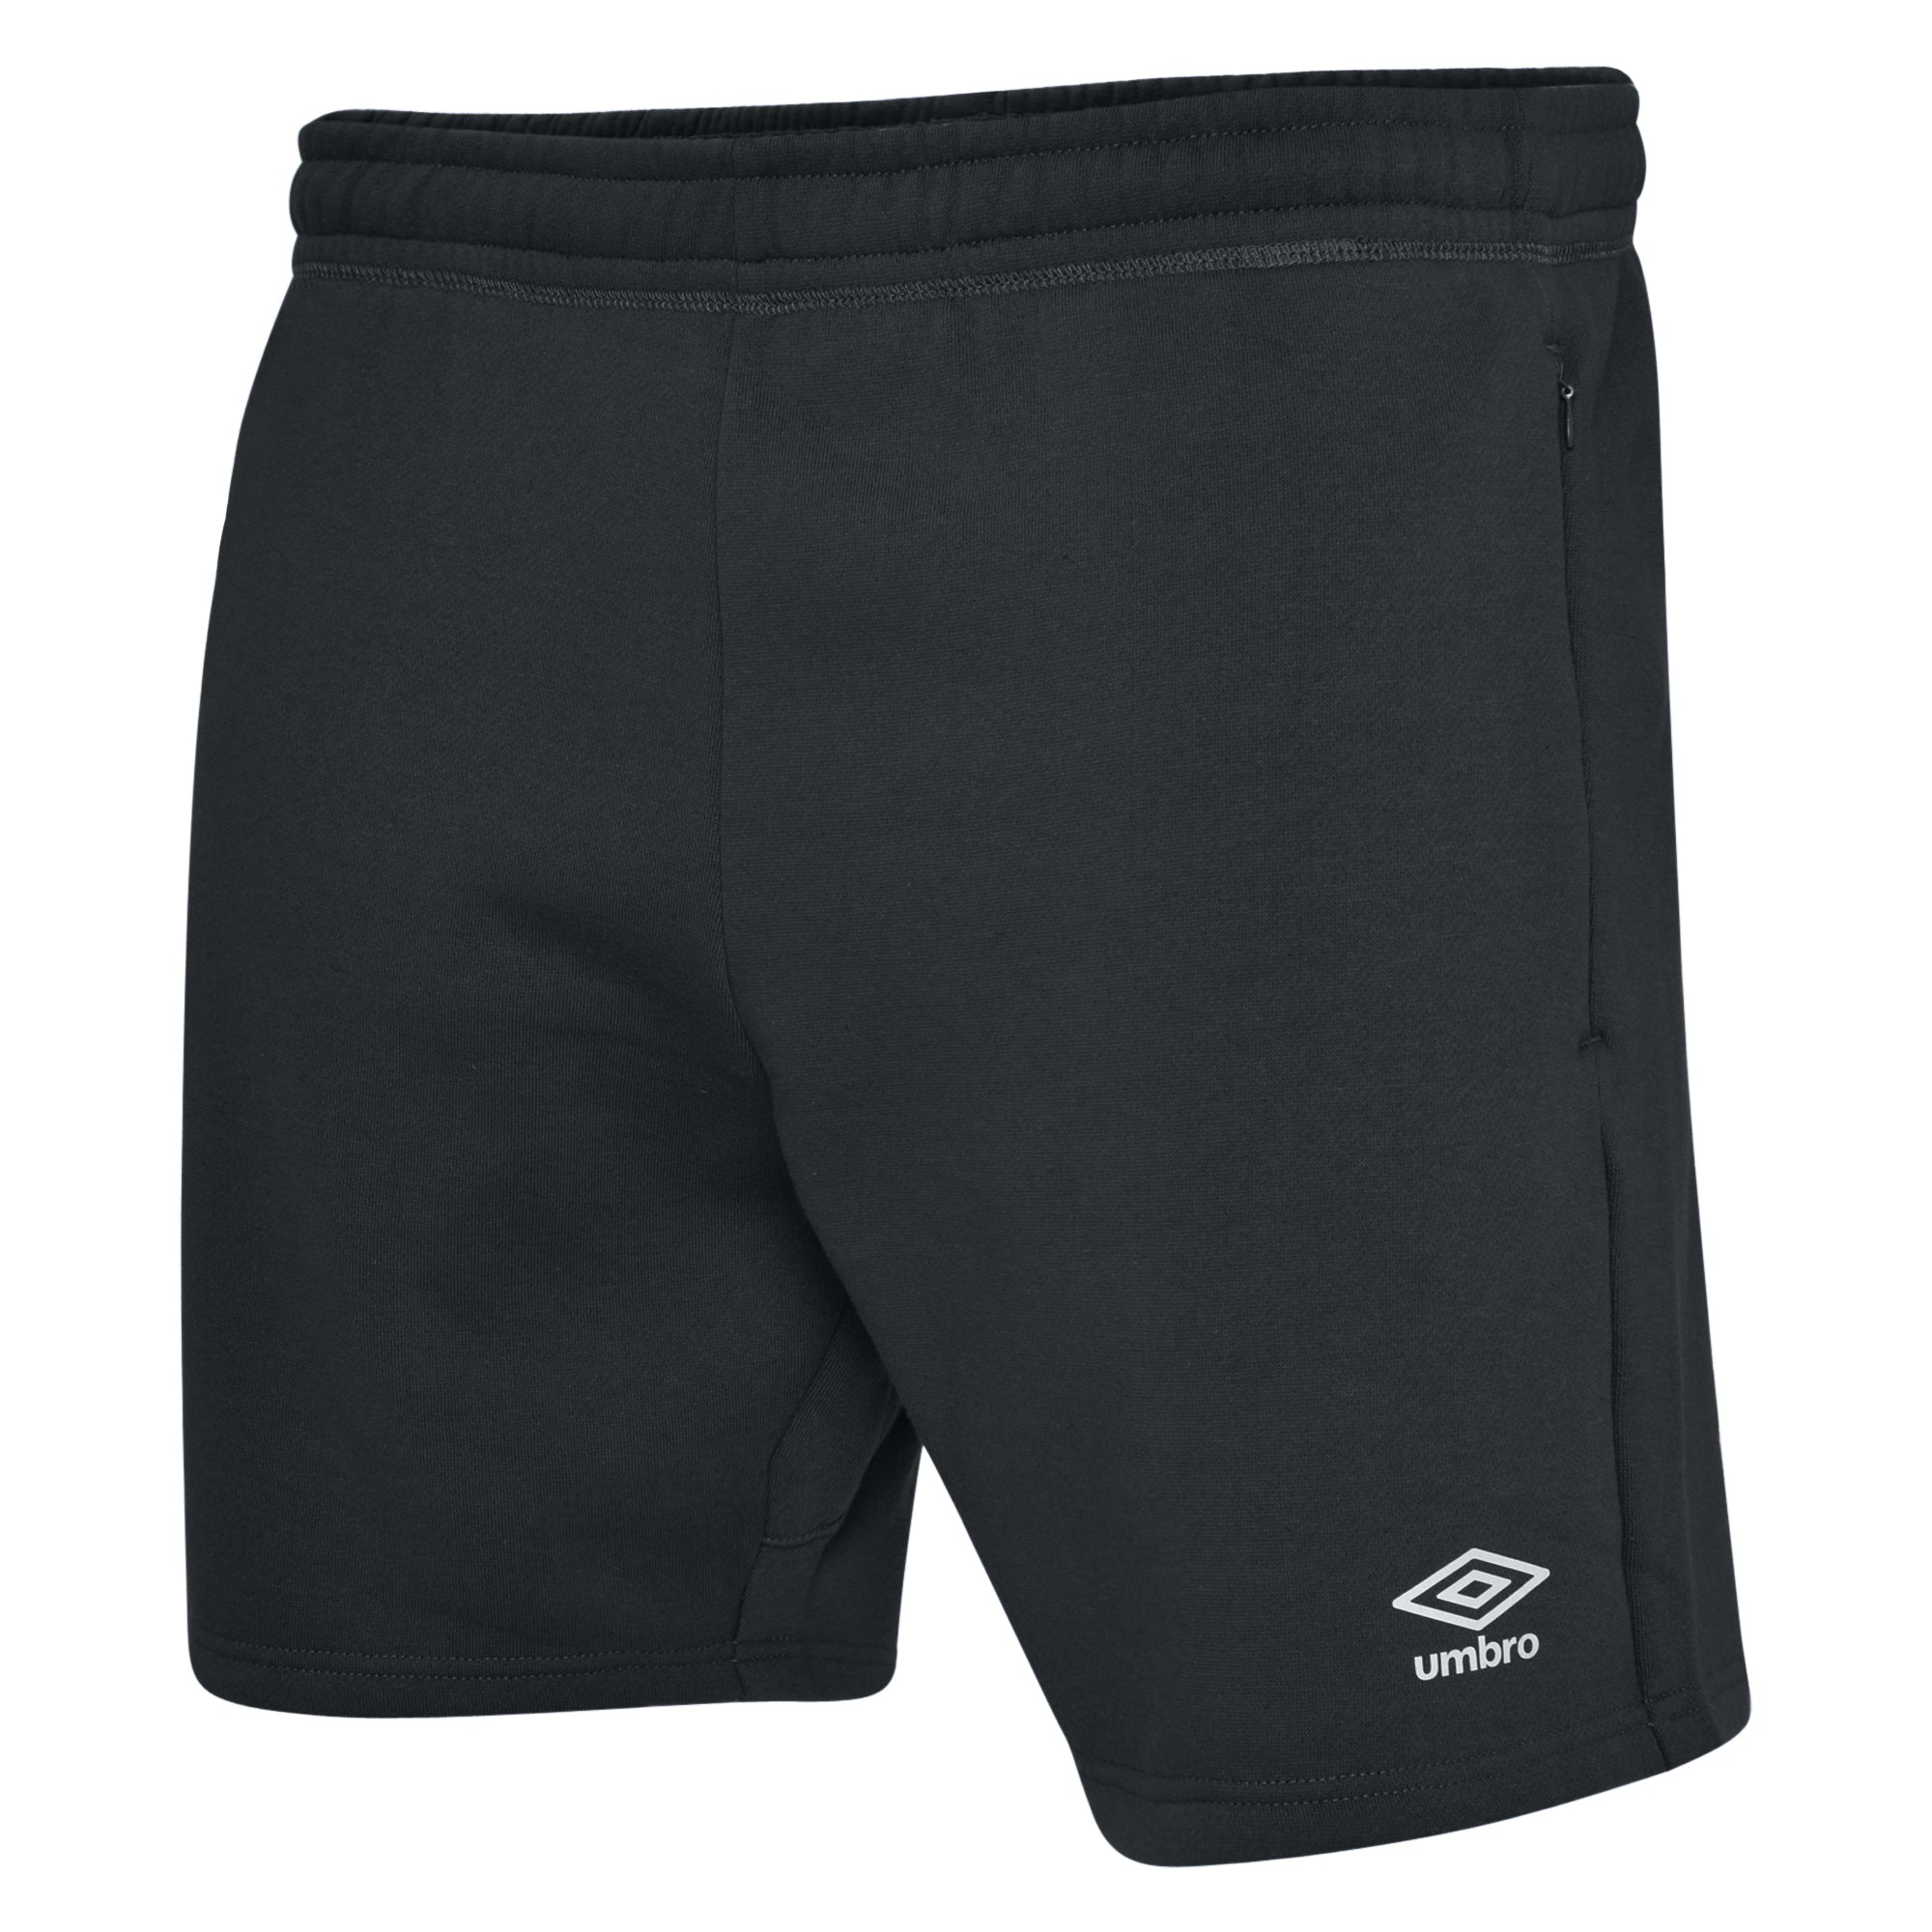 Umbro Club Leisure Jog Shorts - Black/White